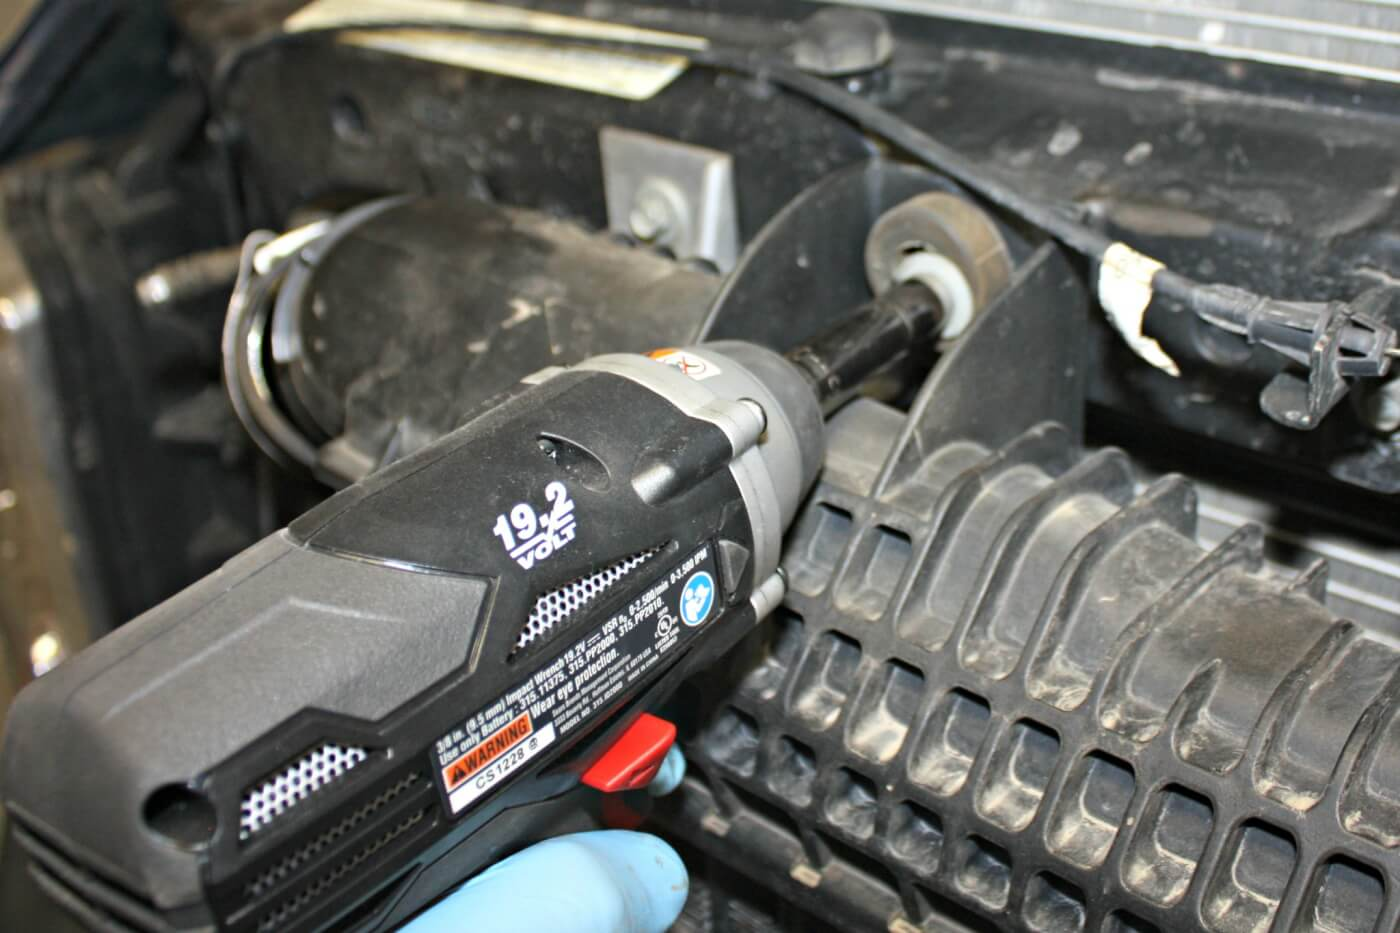 3. The intercooler is held in place by two bolts that attach it to the radiator core support.